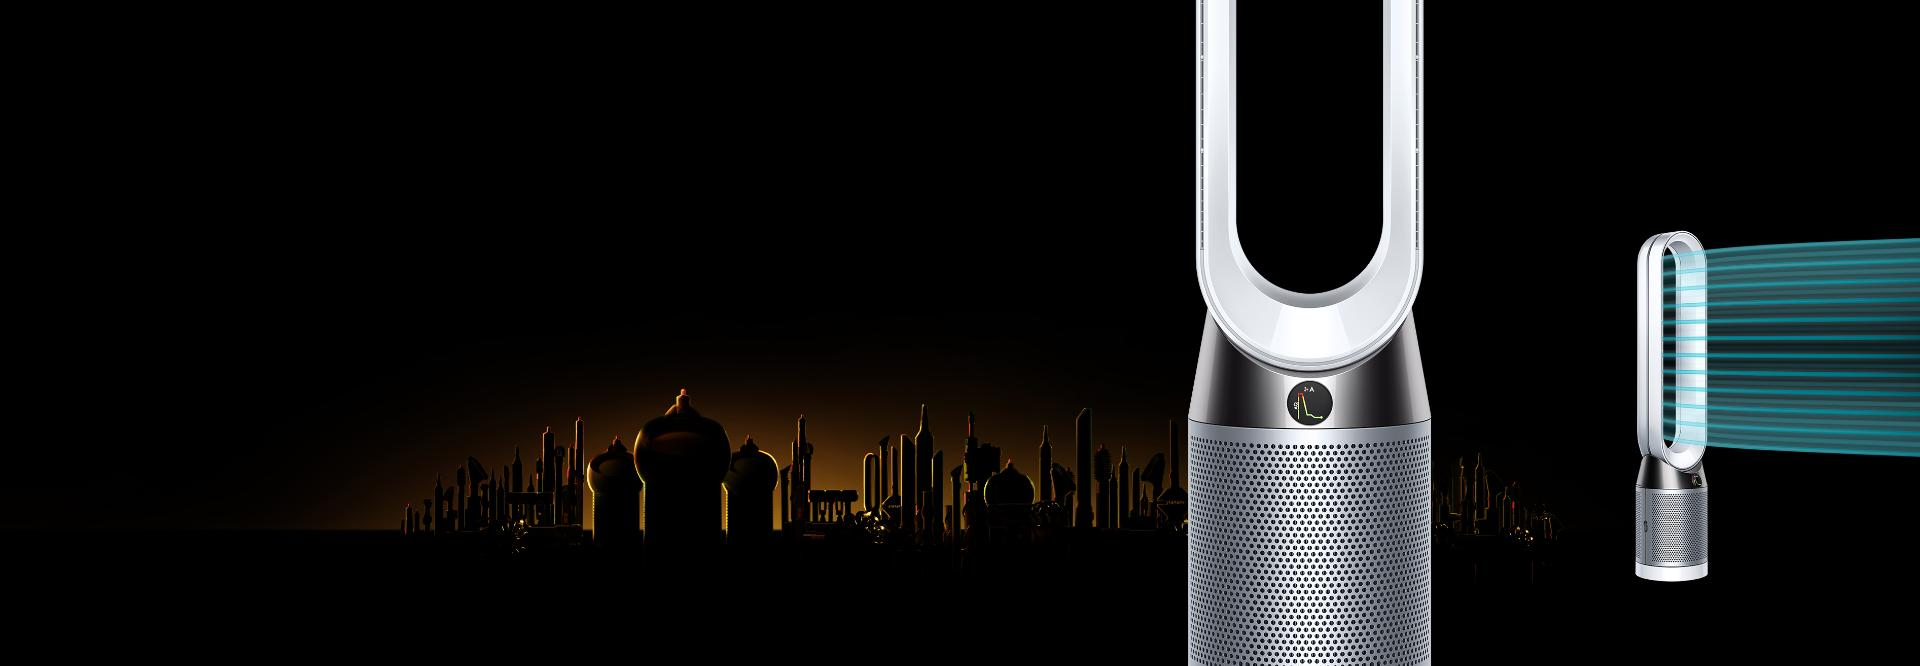 Ramadan background with close up of  Dyson TP04 and angled TP04 with chuff